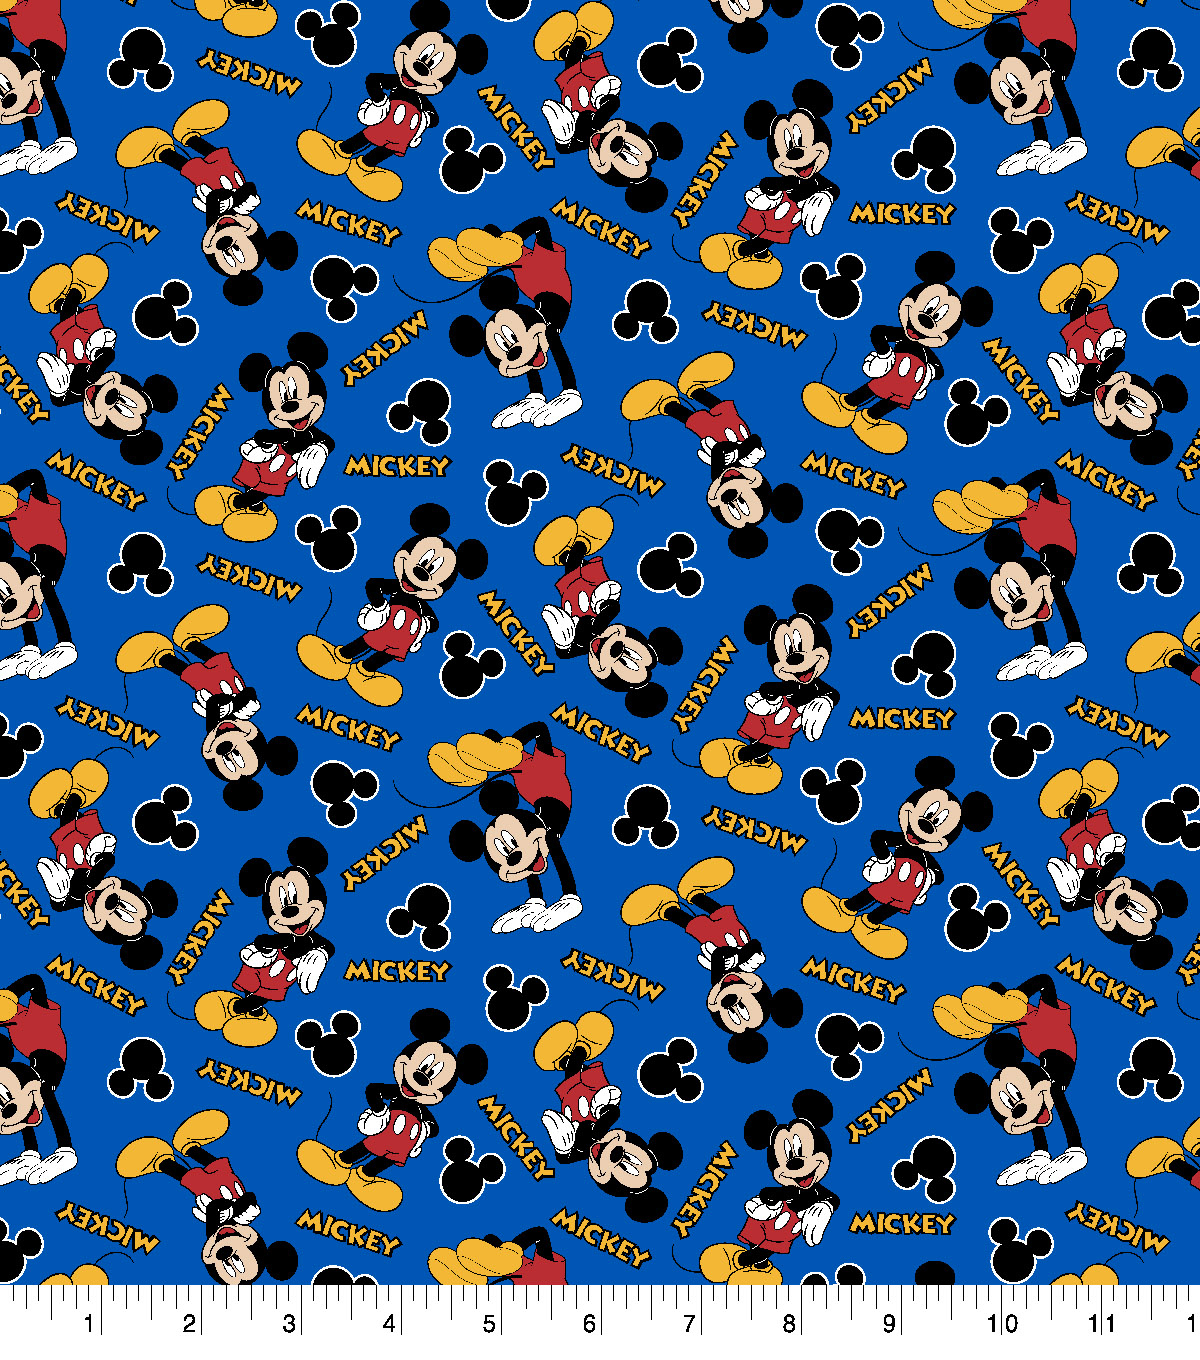 Disney Mickey Disney Mickey Mouse Cotton Fabric 1928